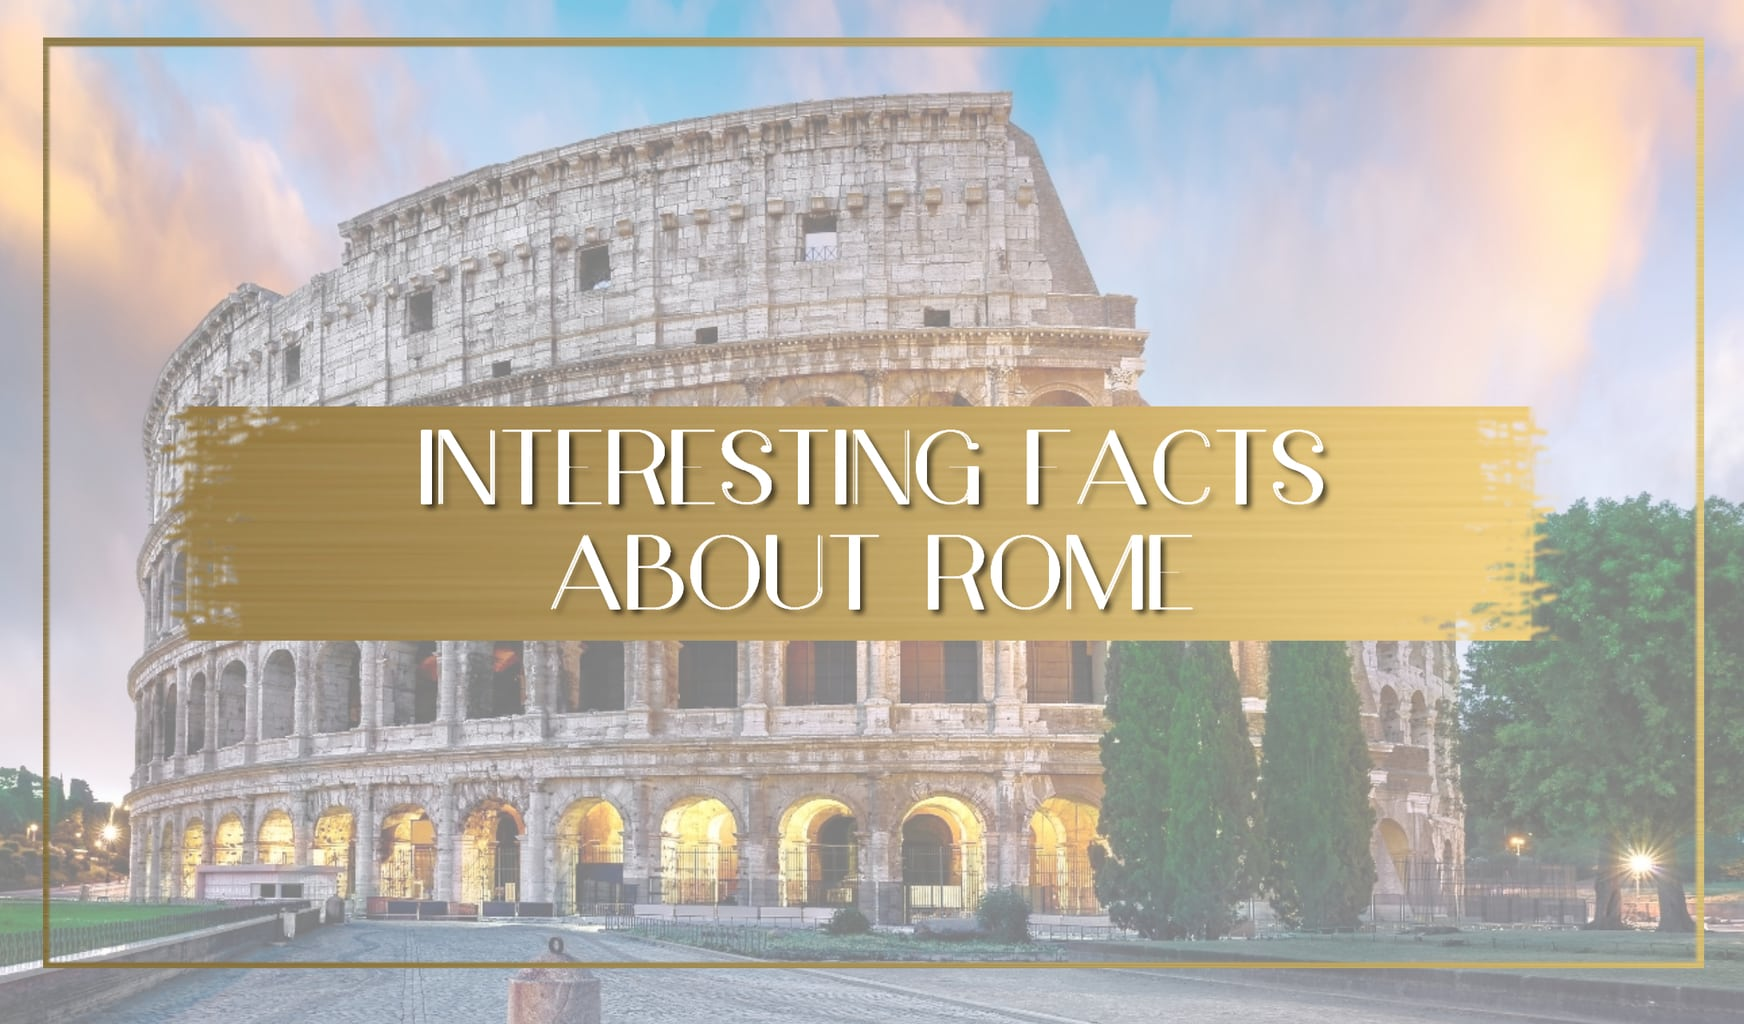 Facts about Rome main